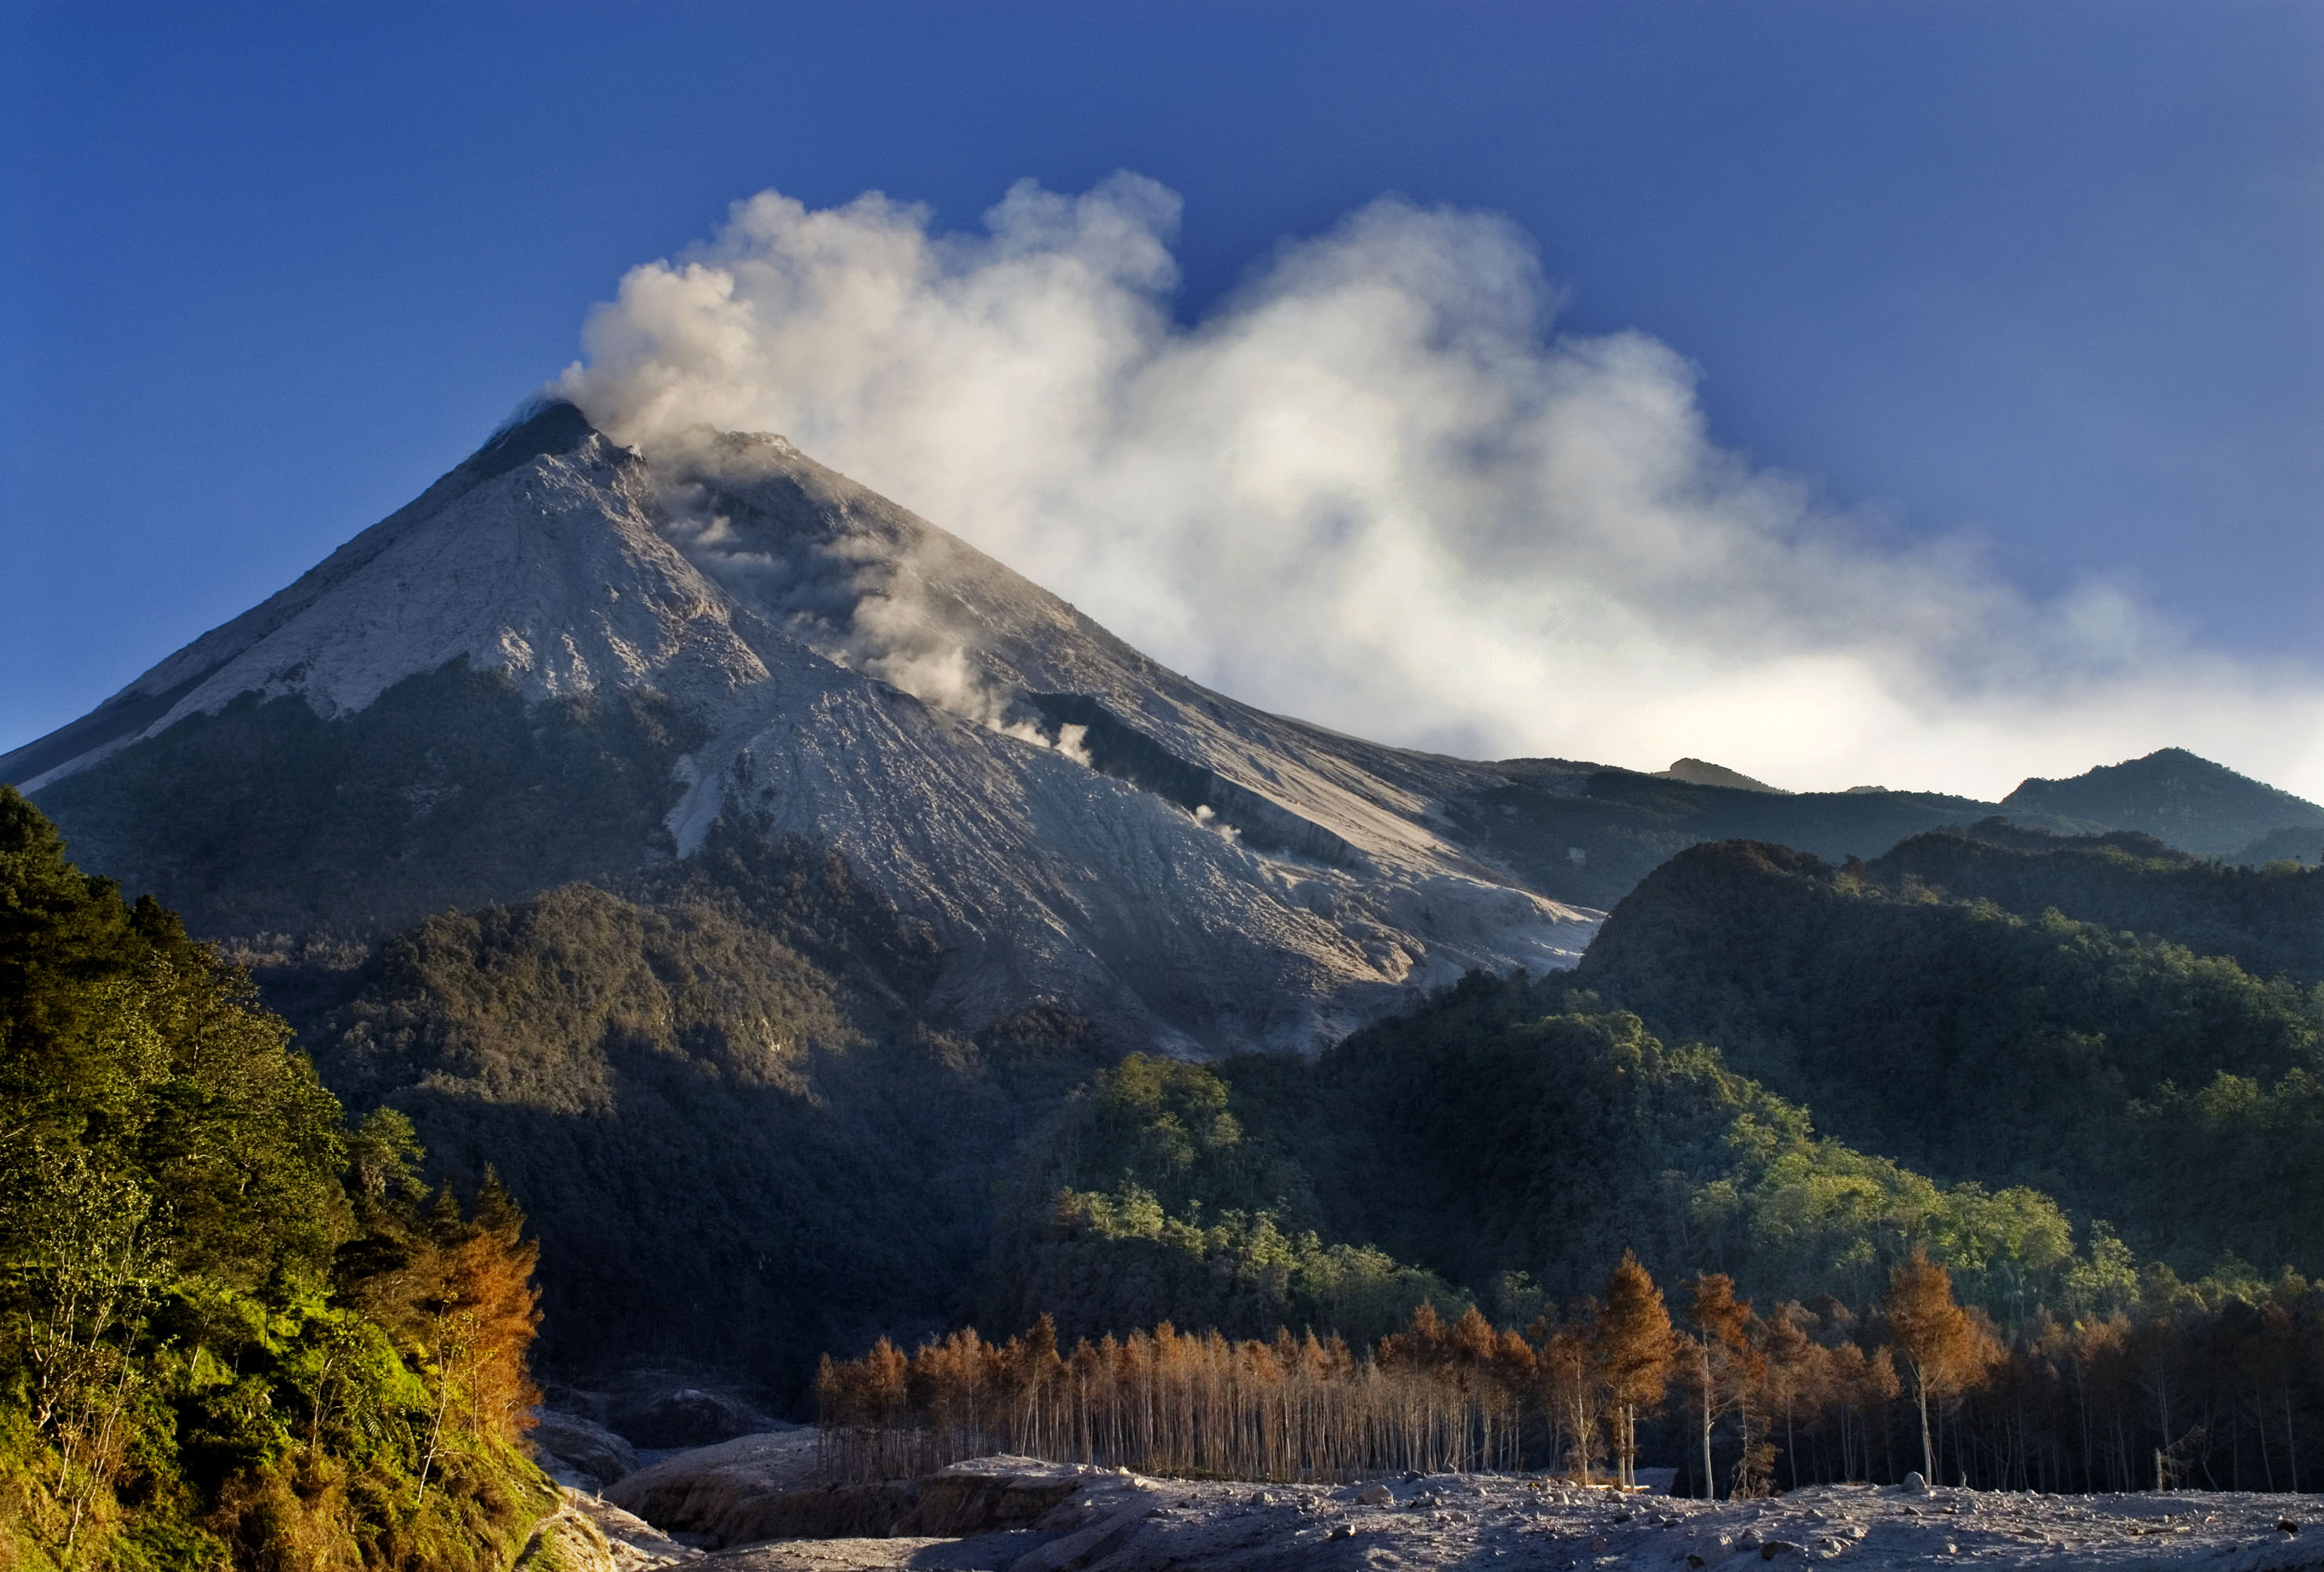 http://www.backpackerinsight.com/wp-content/uploads/2013/10/dibawah-kaki-gunung-merapi.jpg